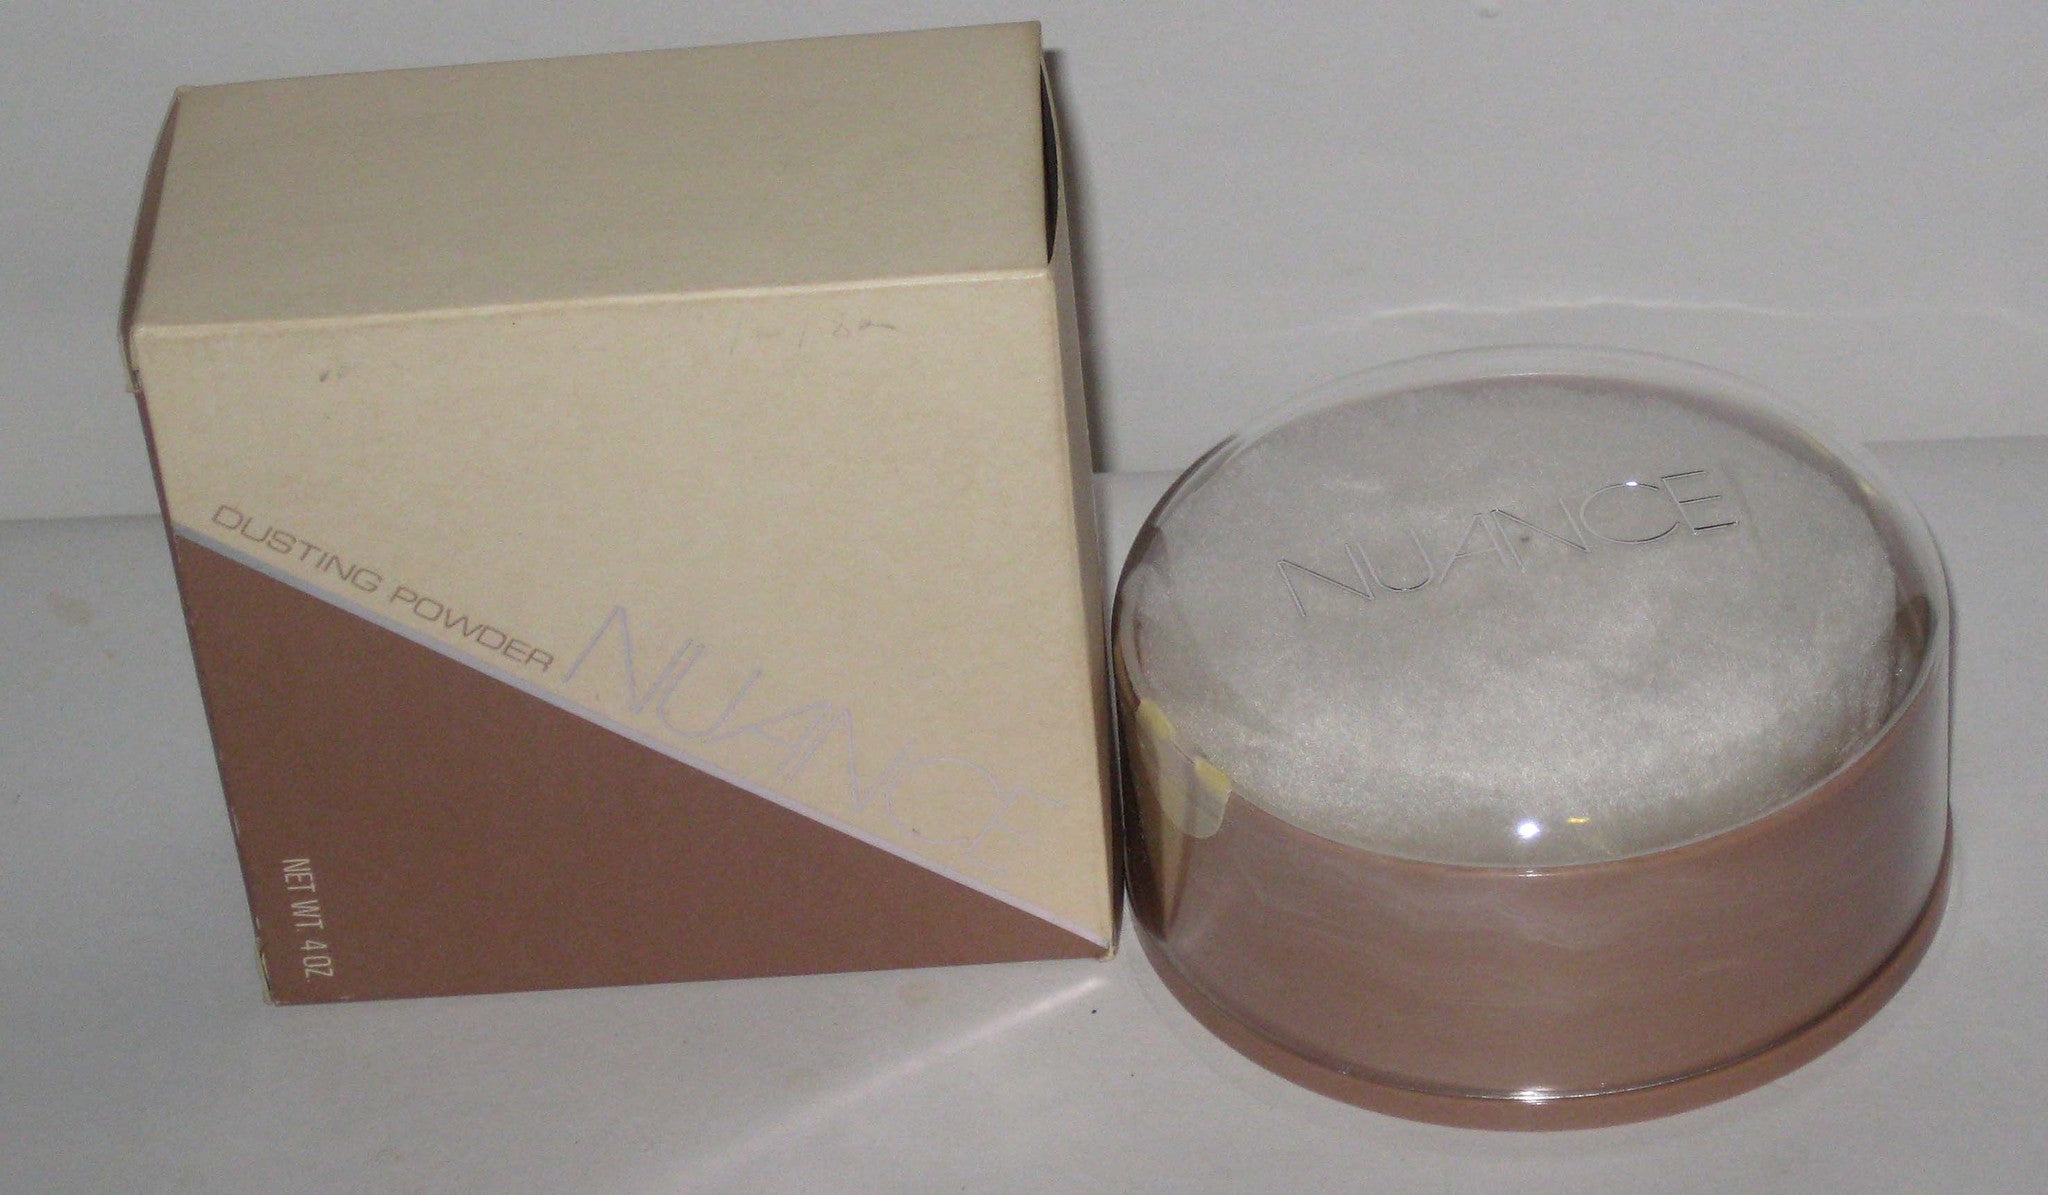 Coty Nuance Dusting Powder